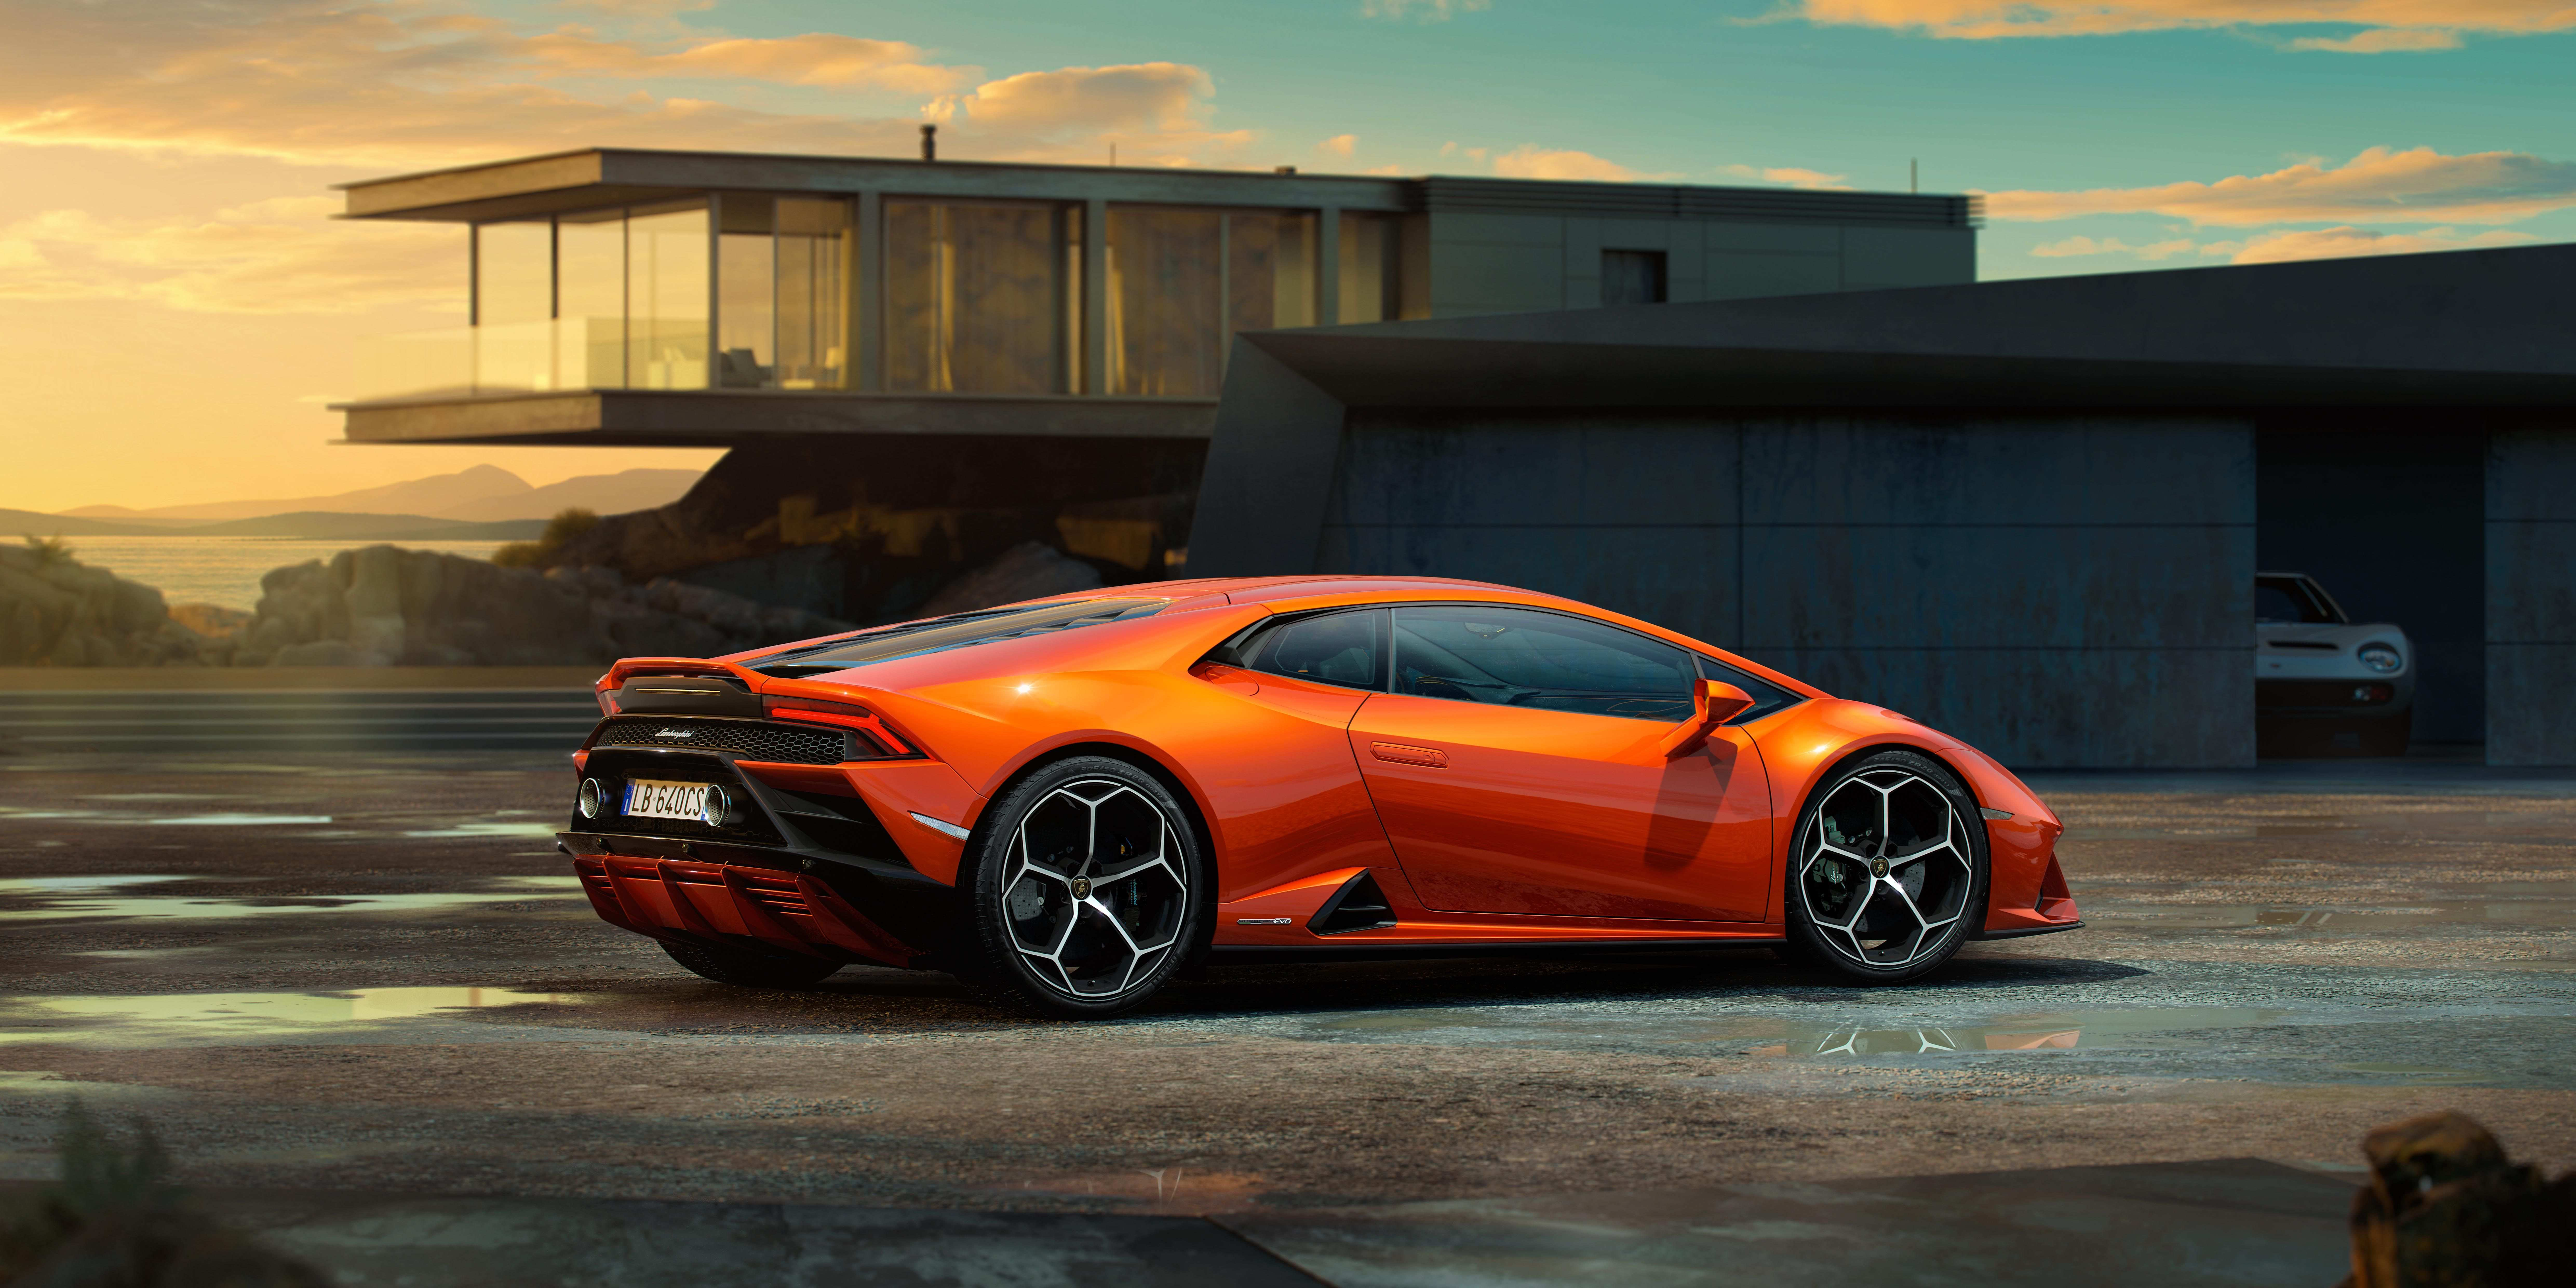 62 The 2019 Lamborghini Huracan Horsepower Prices with 2019 Lamborghini Huracan Horsepower